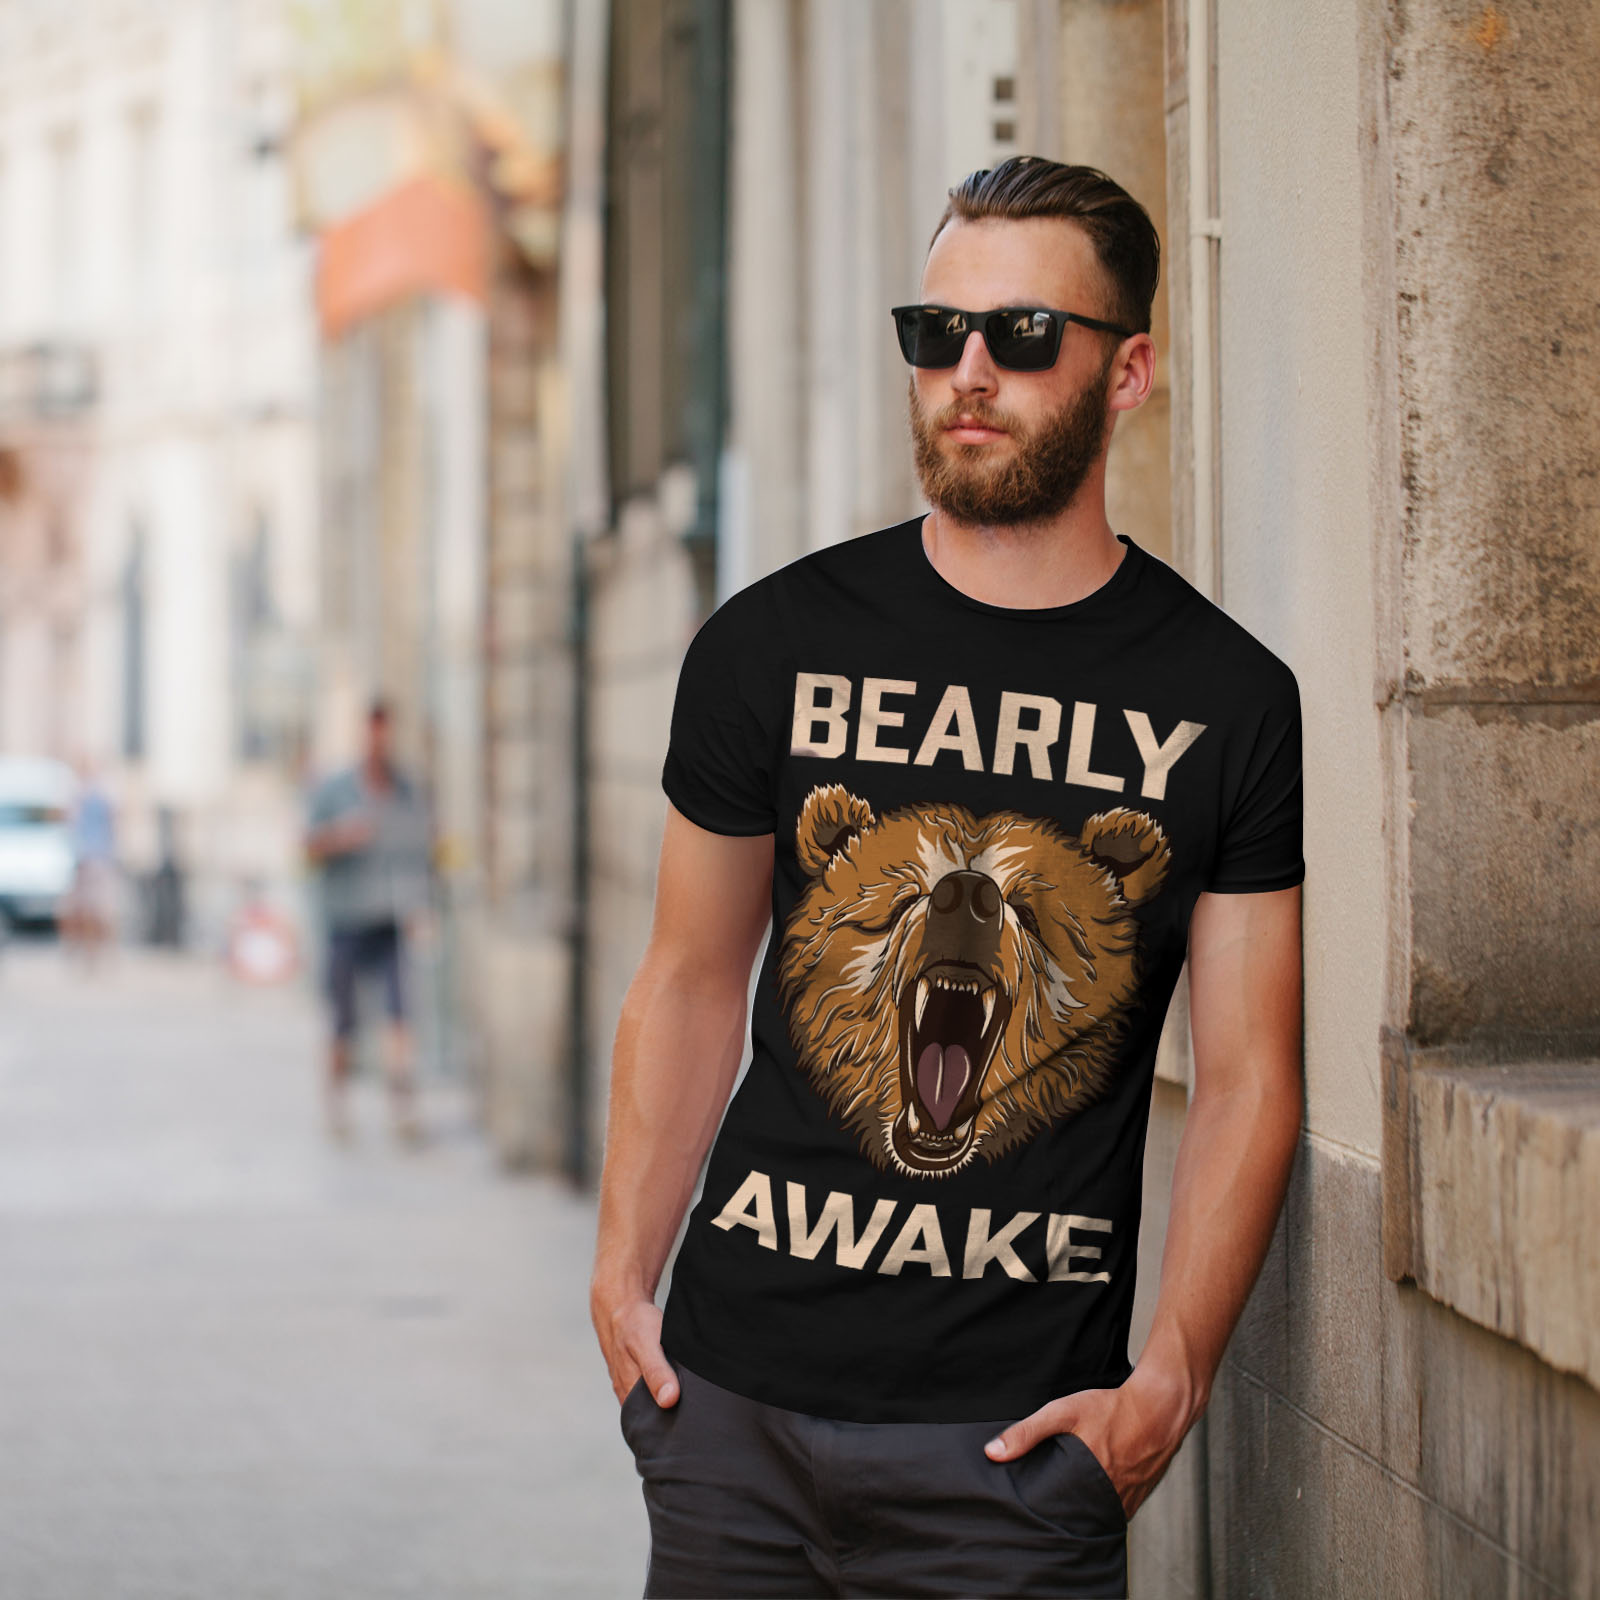 Wellcoda-Bearly-Grizzly-Awake-Mens-T-shirt-Coffee-Graphic-Design-Printed-Tee thumbnail 5